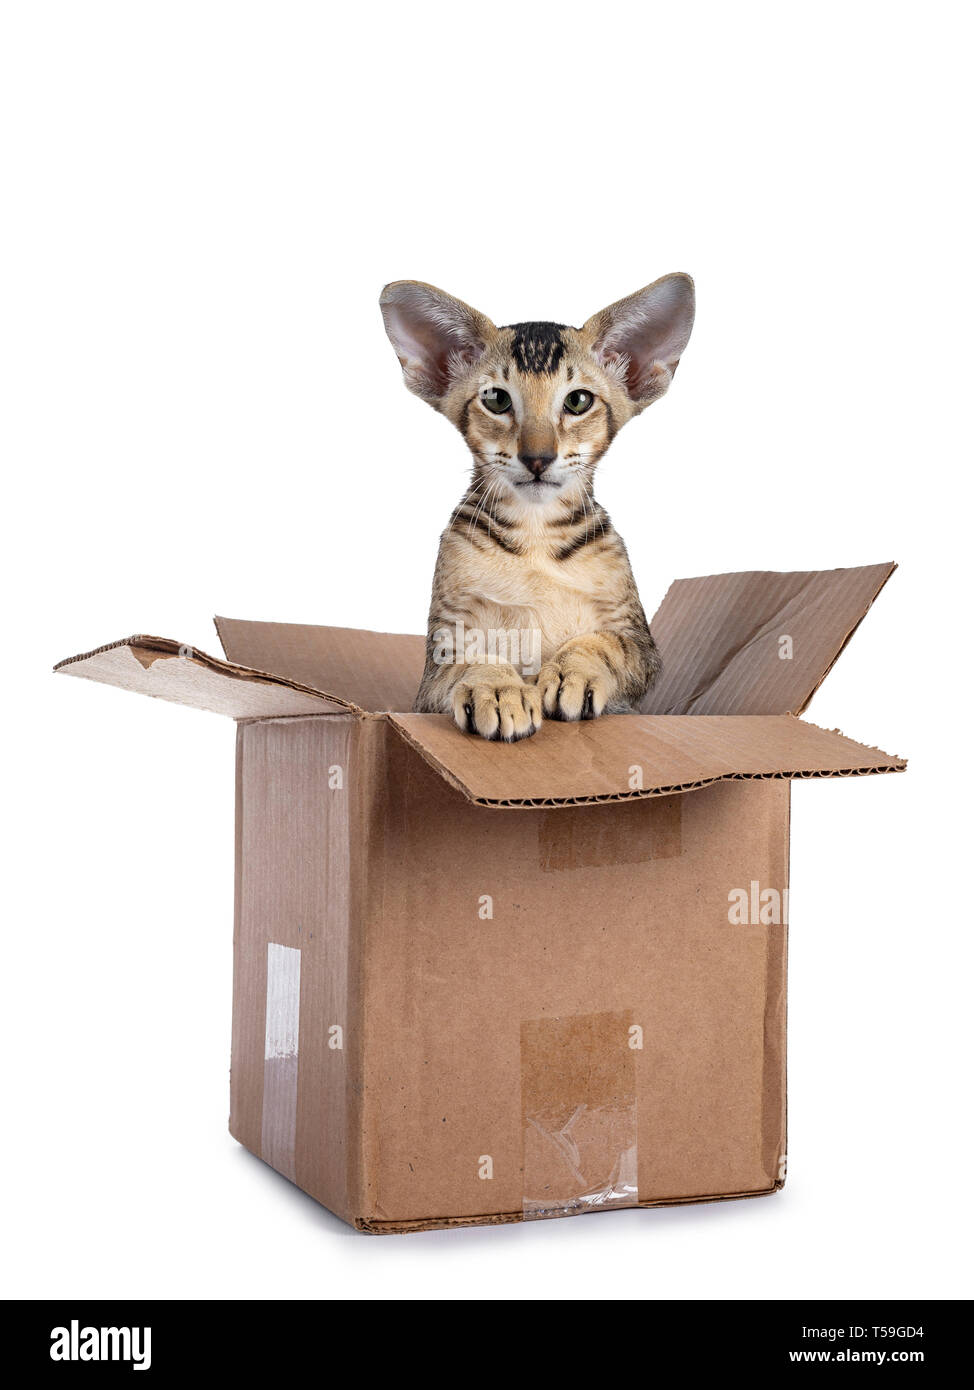 Cute tabby Oriental Shorthair kitten  sitting in brown paper box. Looking straight at lens lens with green eyes. Isolated on a white background. Paws  - Stock Image